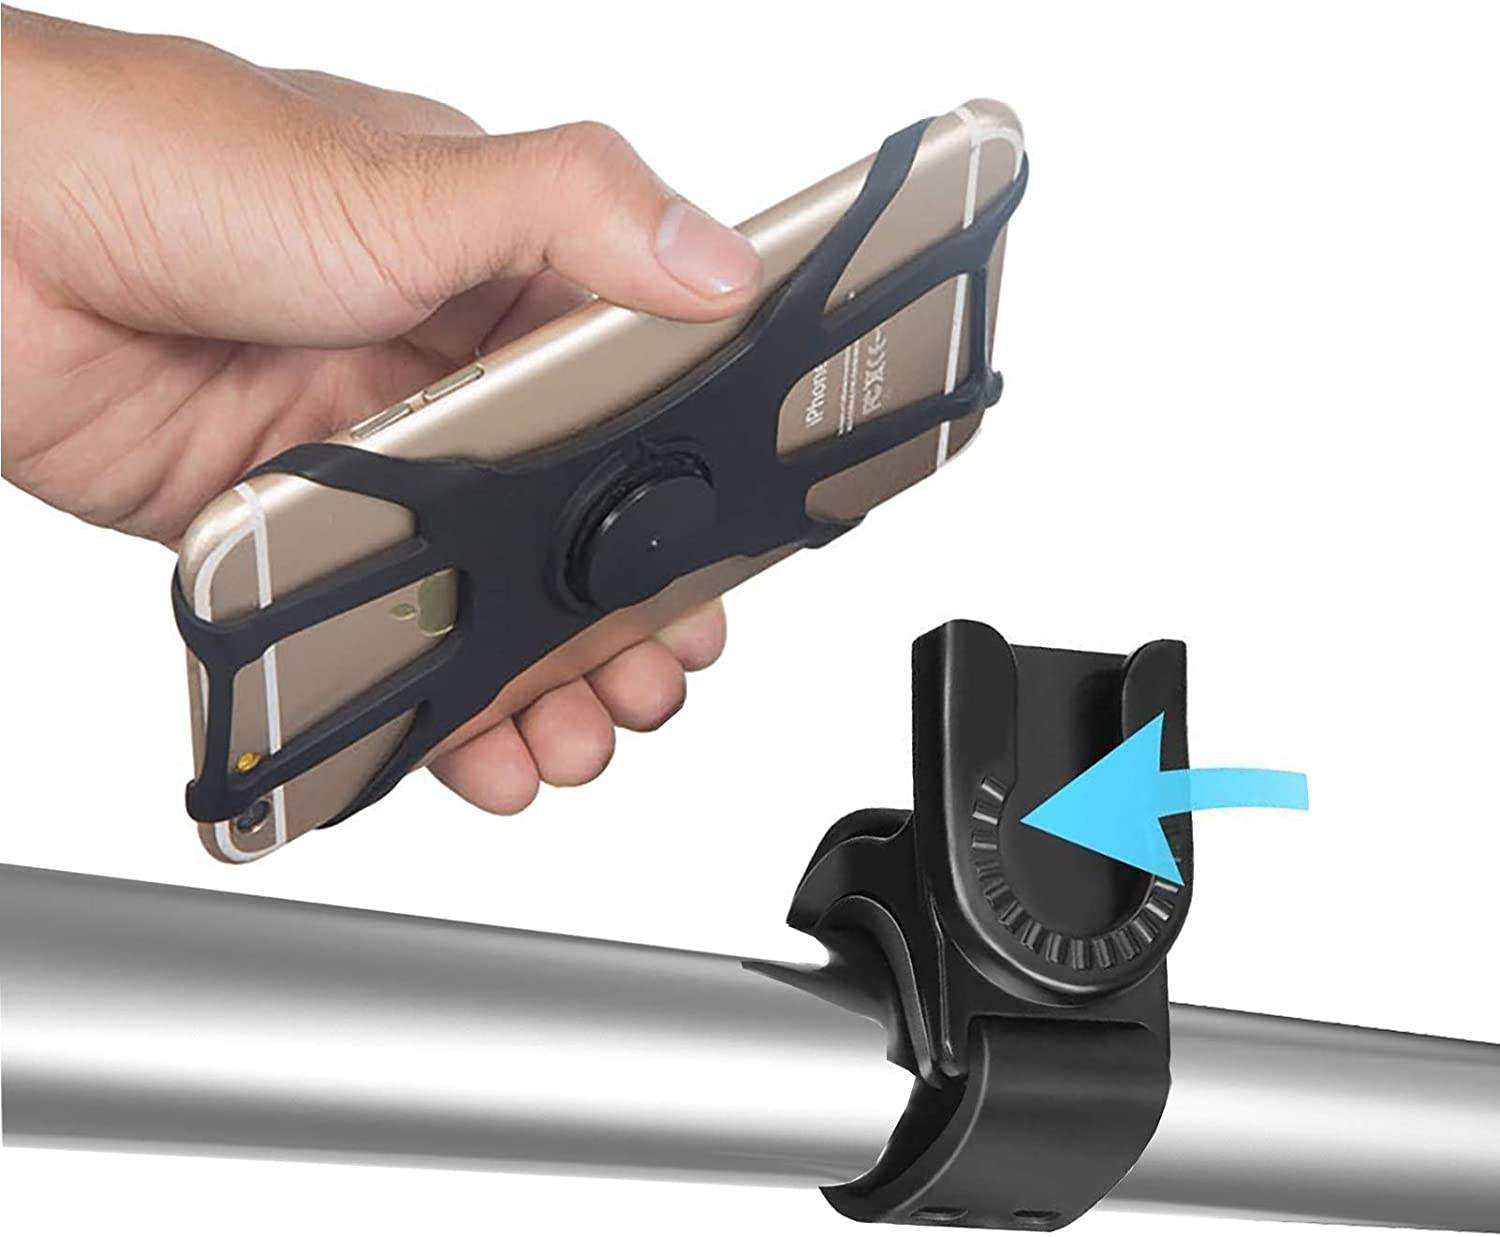 ORIbox Bike Phone Mount, Removable Bicycle Phone Holder Handlebar, Compatible with iPhone 12/11 Pro Max XS Max XR X 8 7 6S Plus SE 2020 12 Mini,Samsung Galaxy,Black